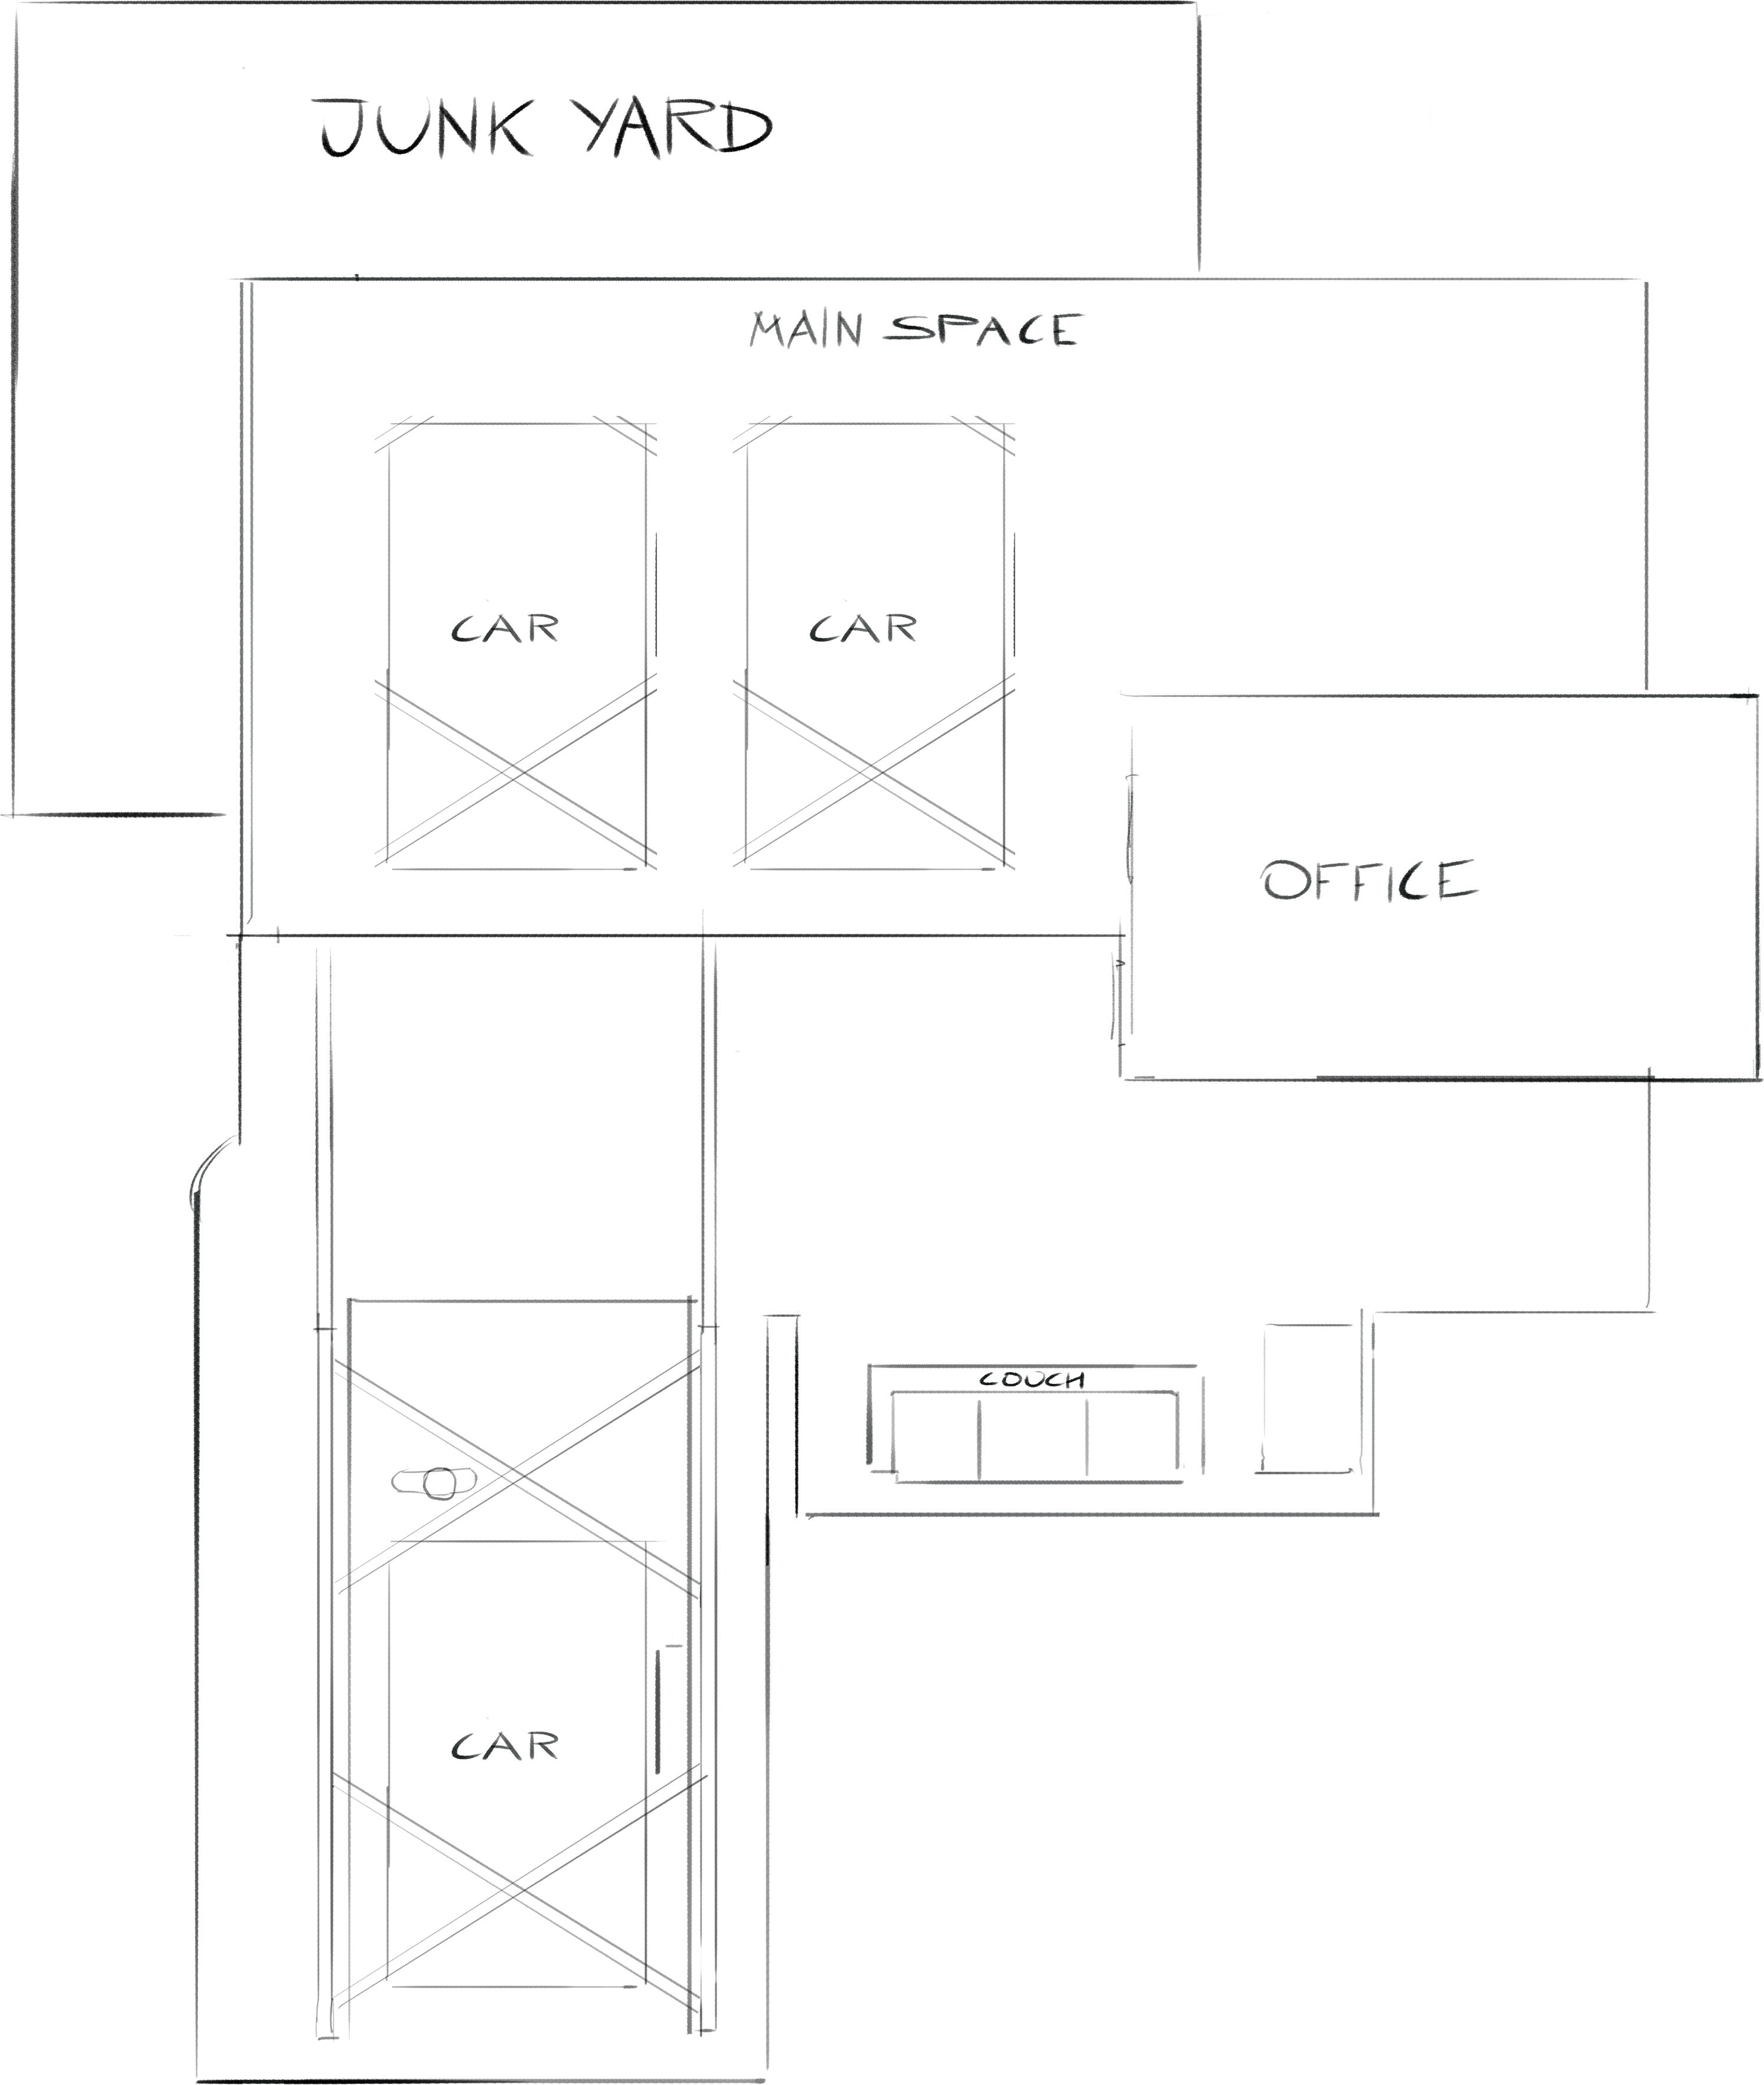 Middle level plan view